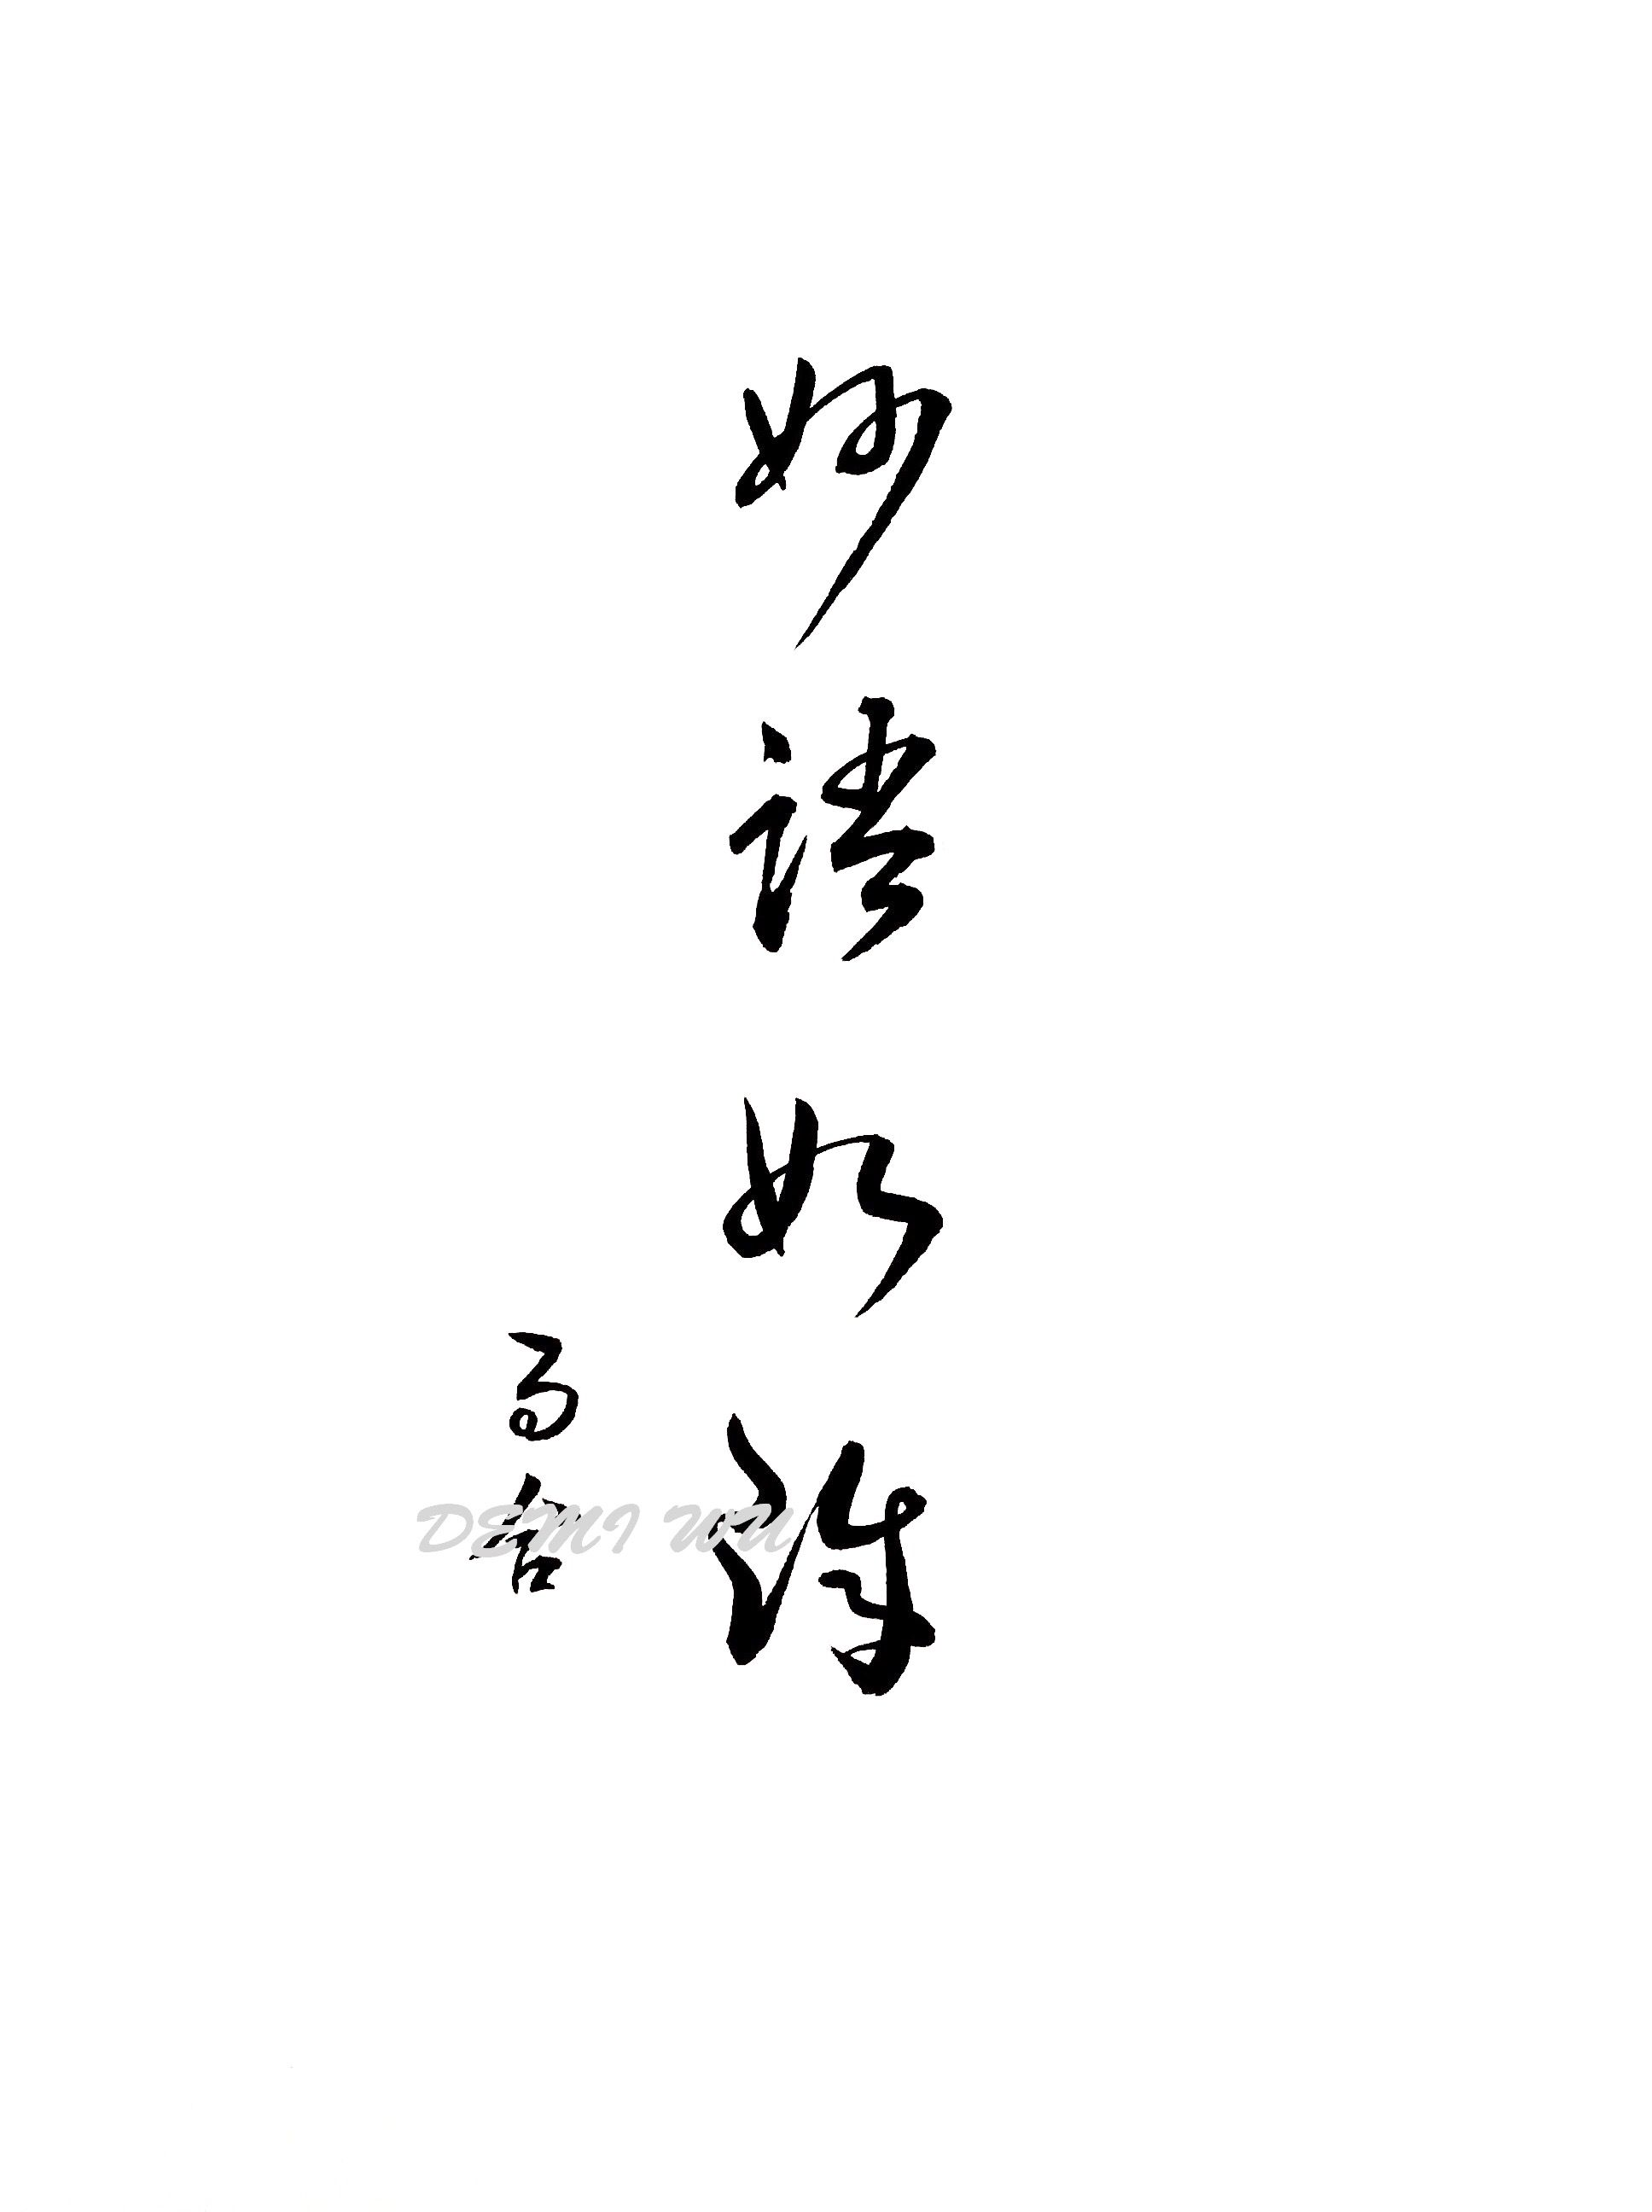 Pin by amy erwin on abcsssealssymbolssignsemblemsgeo calligraphy writing chinese calligraphy glyphs scripts seals symbols stamps icons script biocorpaavc